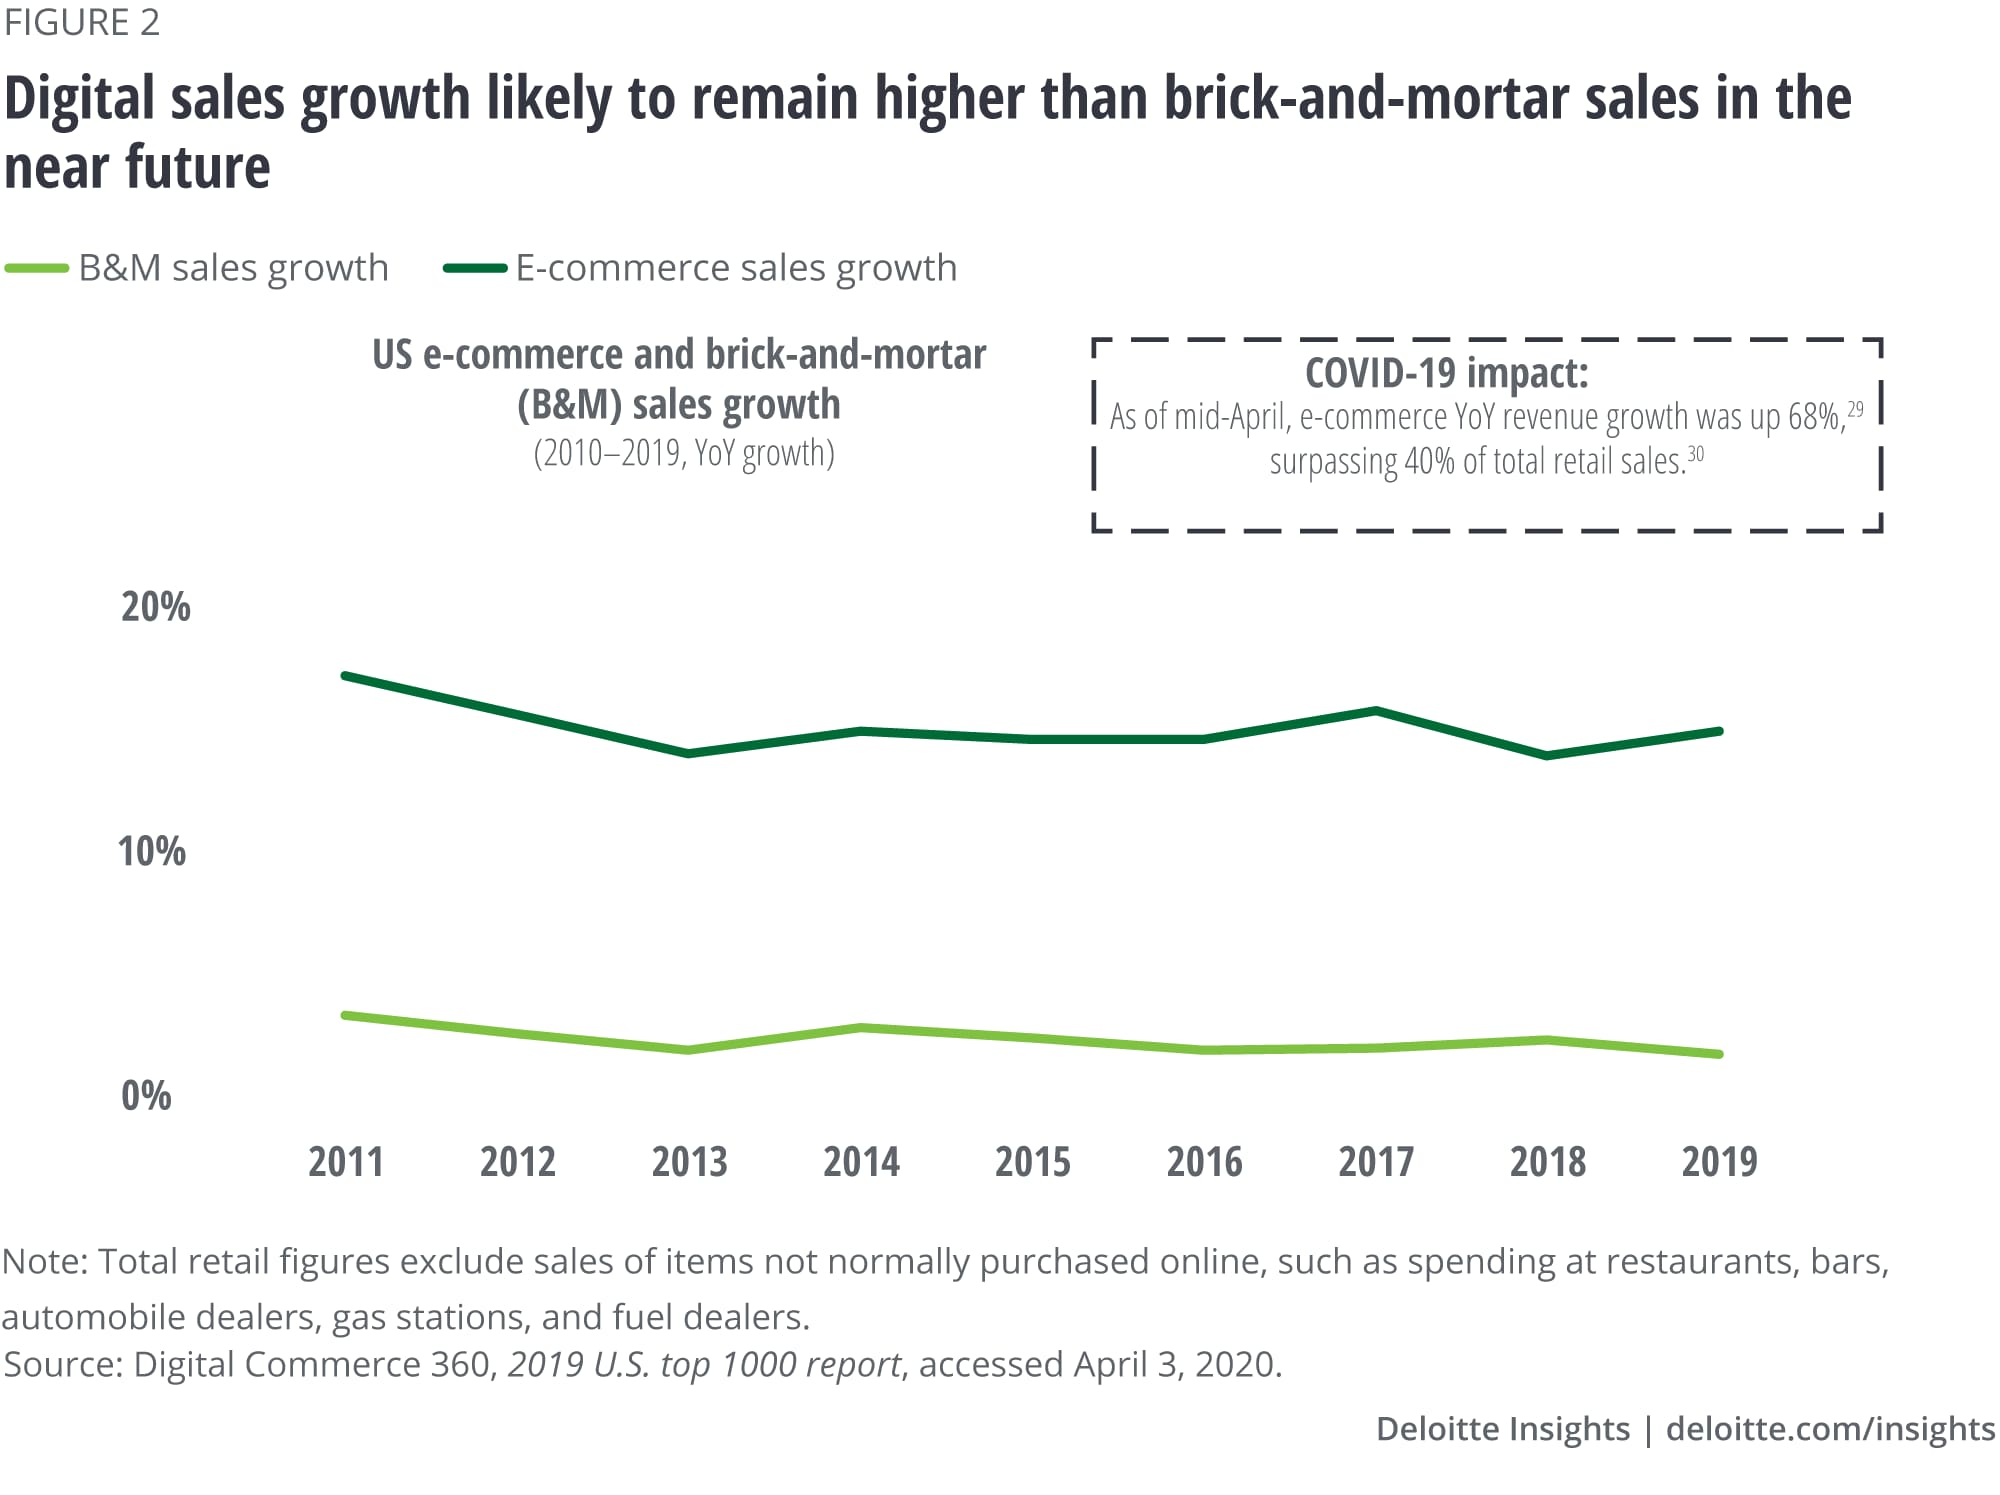 Digital sales is likely to remain higher than brick-and-mortar sales in the near future